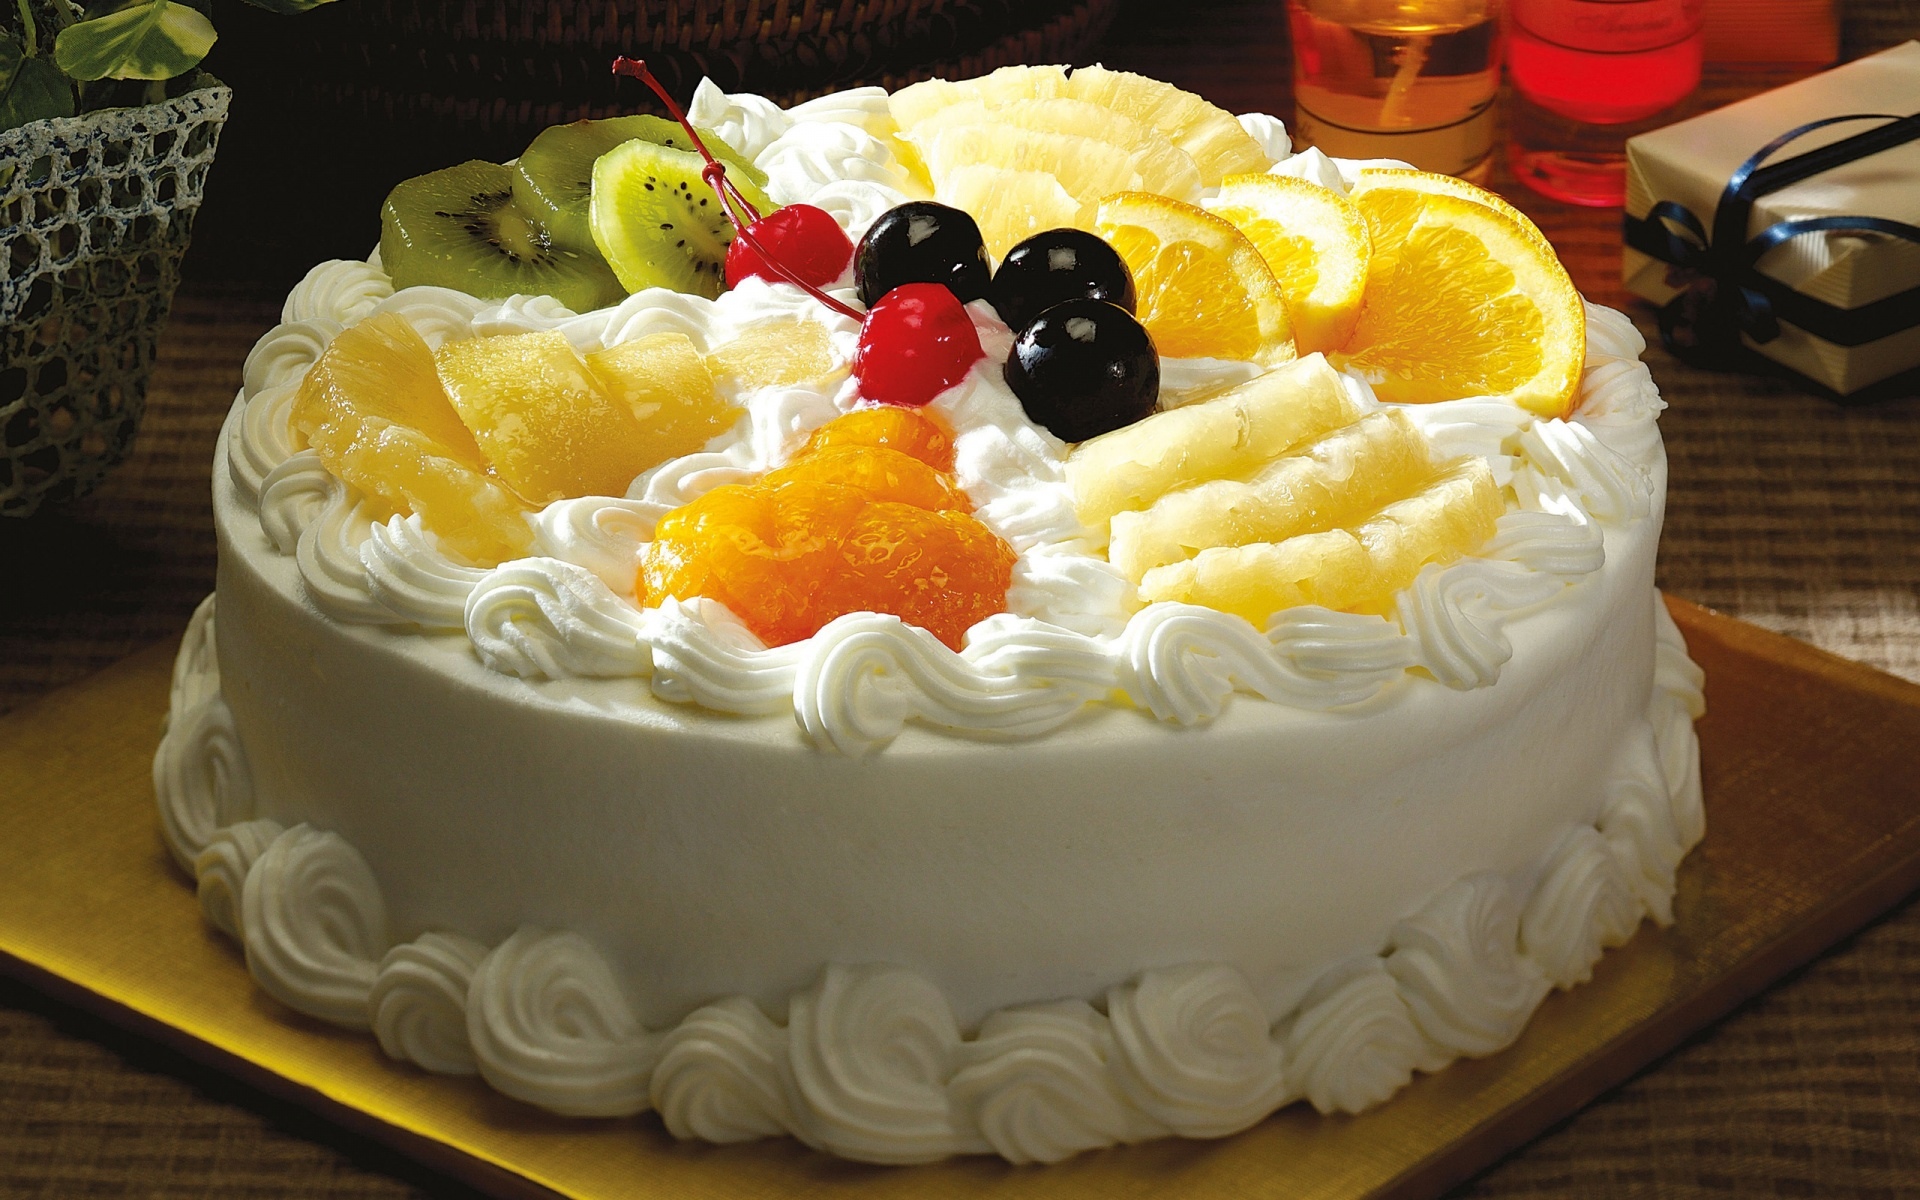 Fruit Creamy Cake